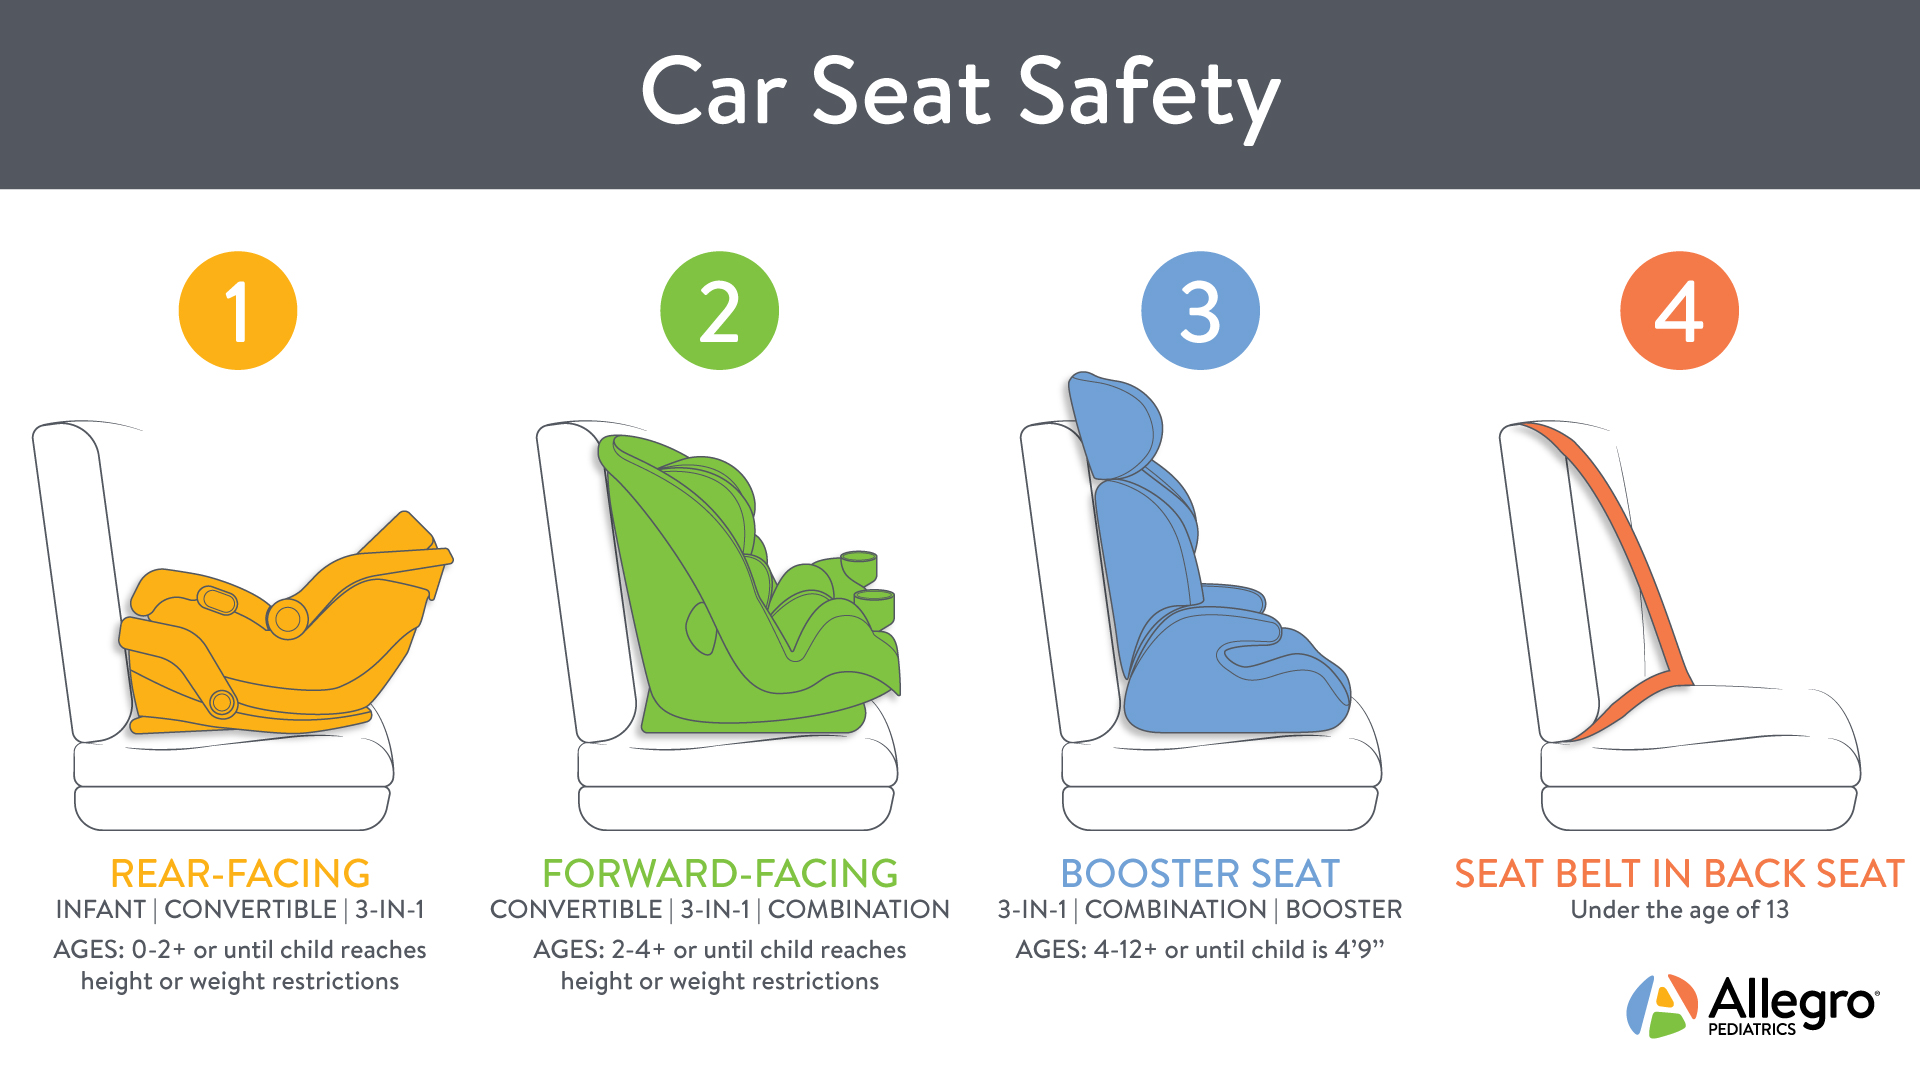 Tremendous Whats New In Car Seat Safety Allegro Pediatrics Evergreenethics Interior Chair Design Evergreenethicsorg